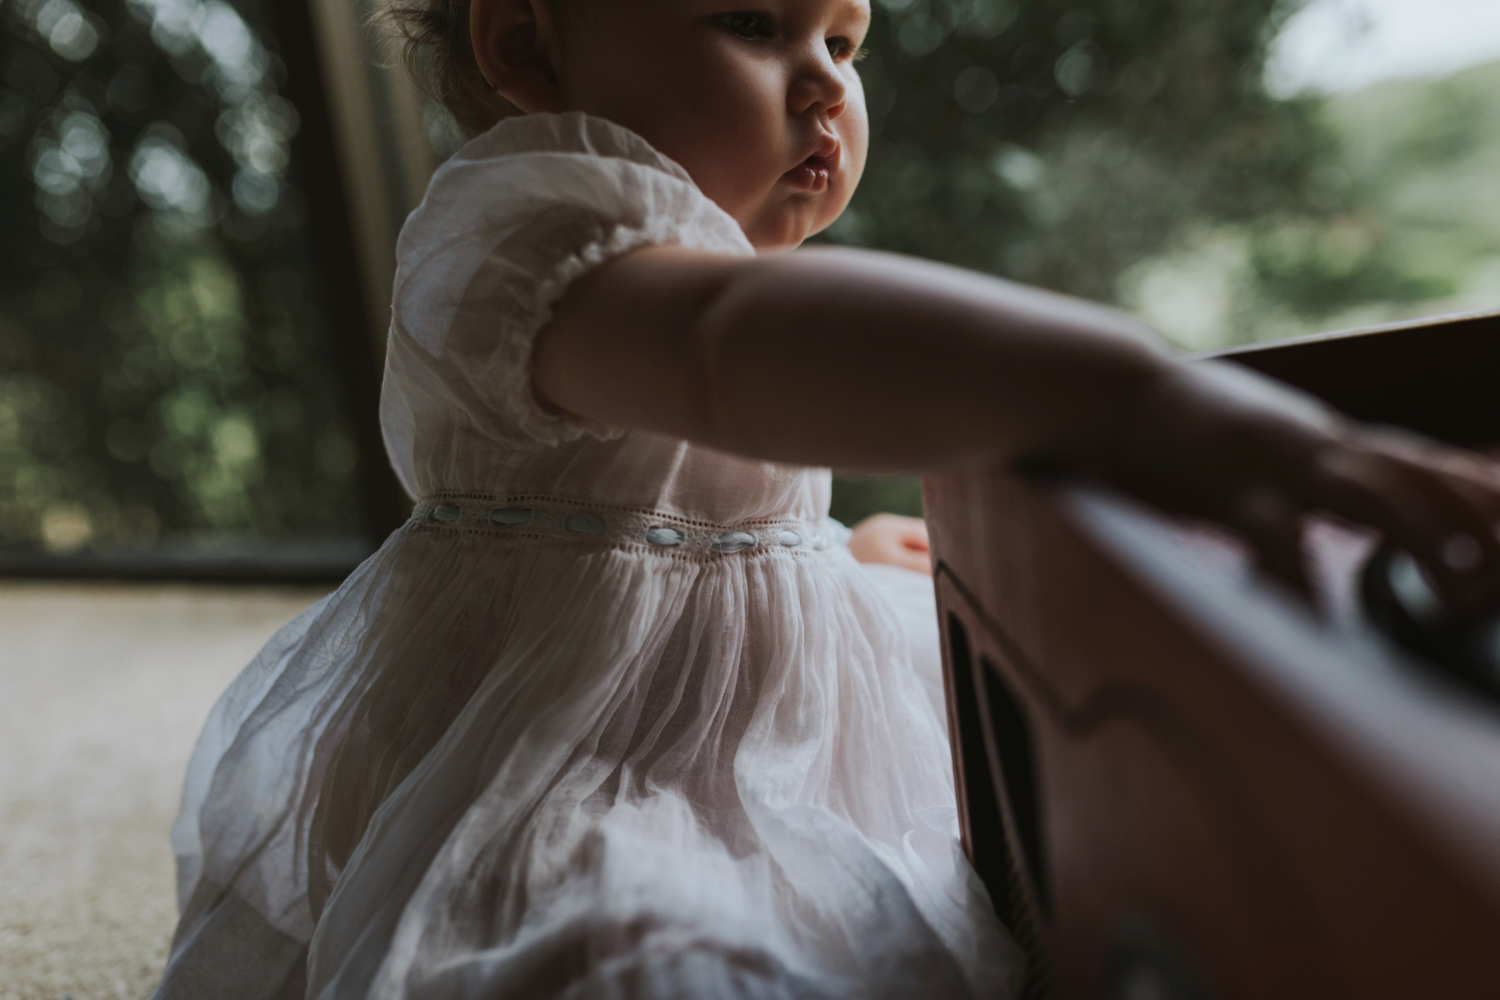 Baby plays with old record player in vintage lace dress during photo session in Brisbane.